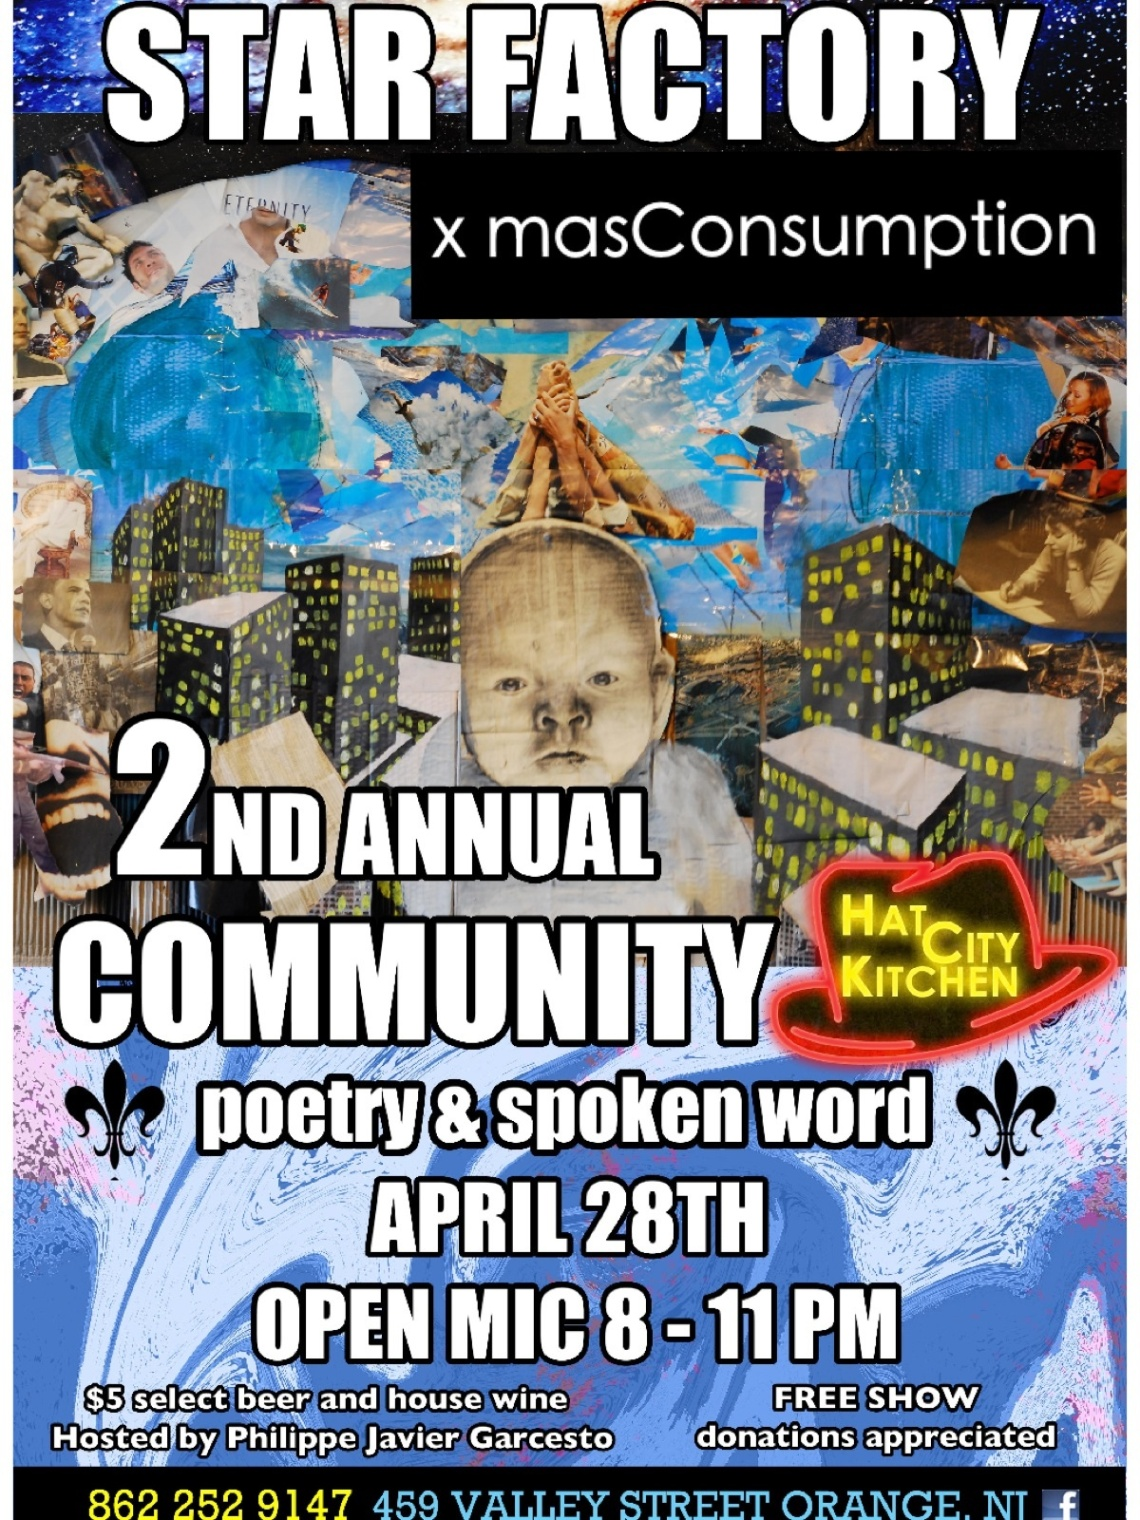 Star Factory Commnity Poetry & Spoken Word